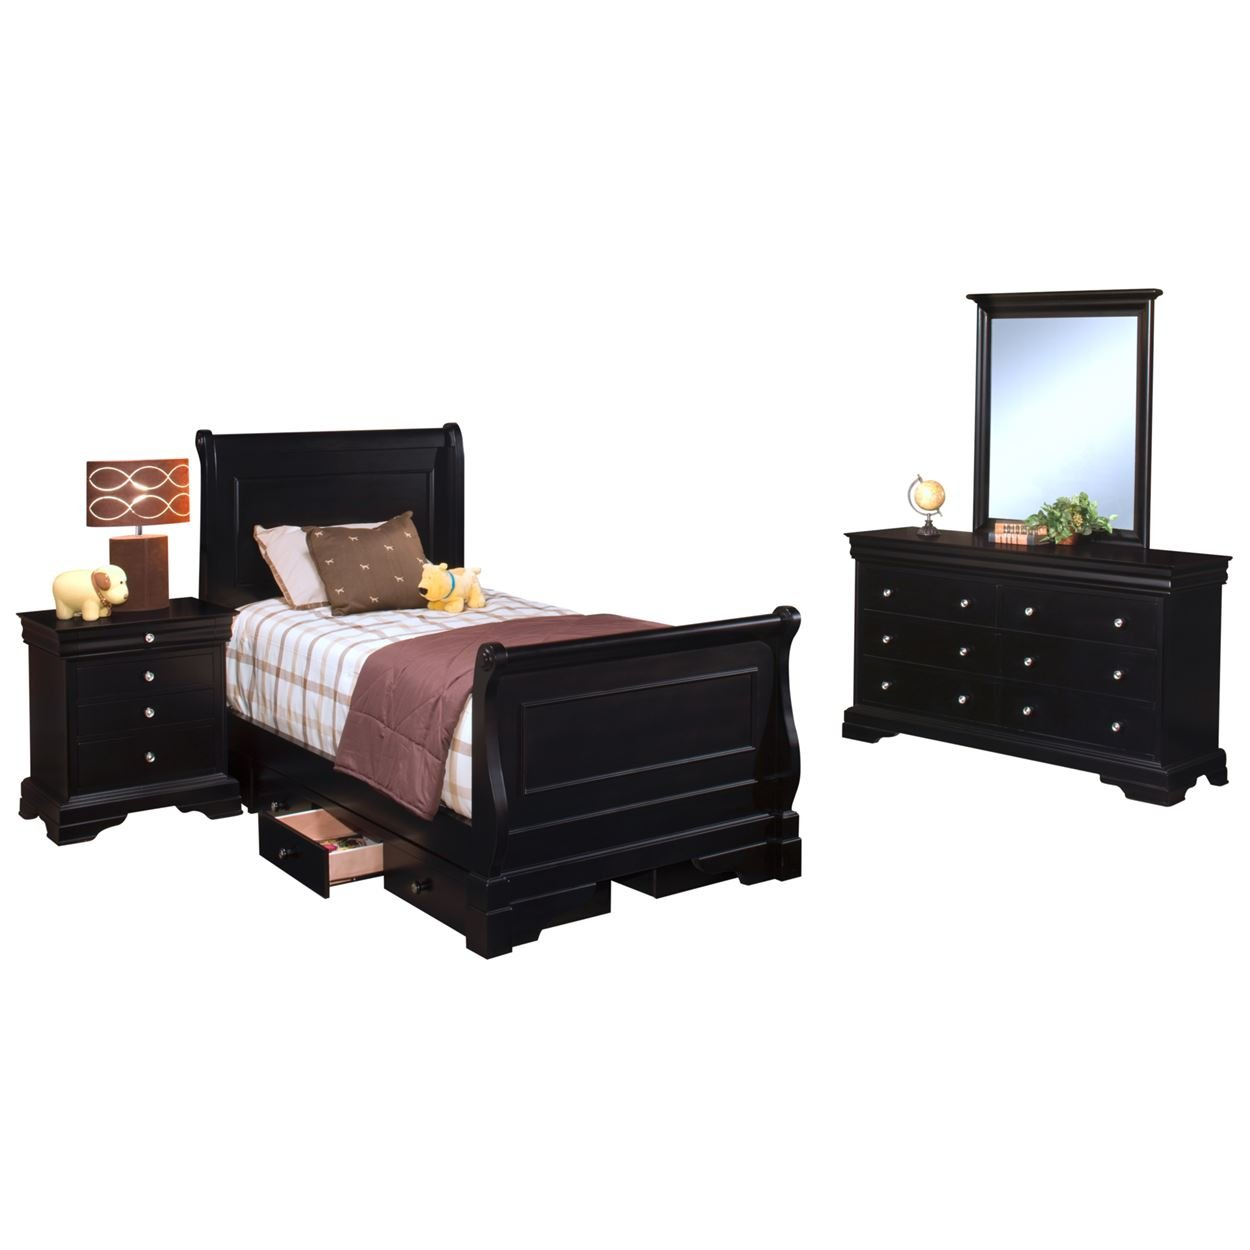 Black Hills Traditional Youth Sleigh 4 Piece Twin Bed, Nightstand, Dresser & Mirror in Black